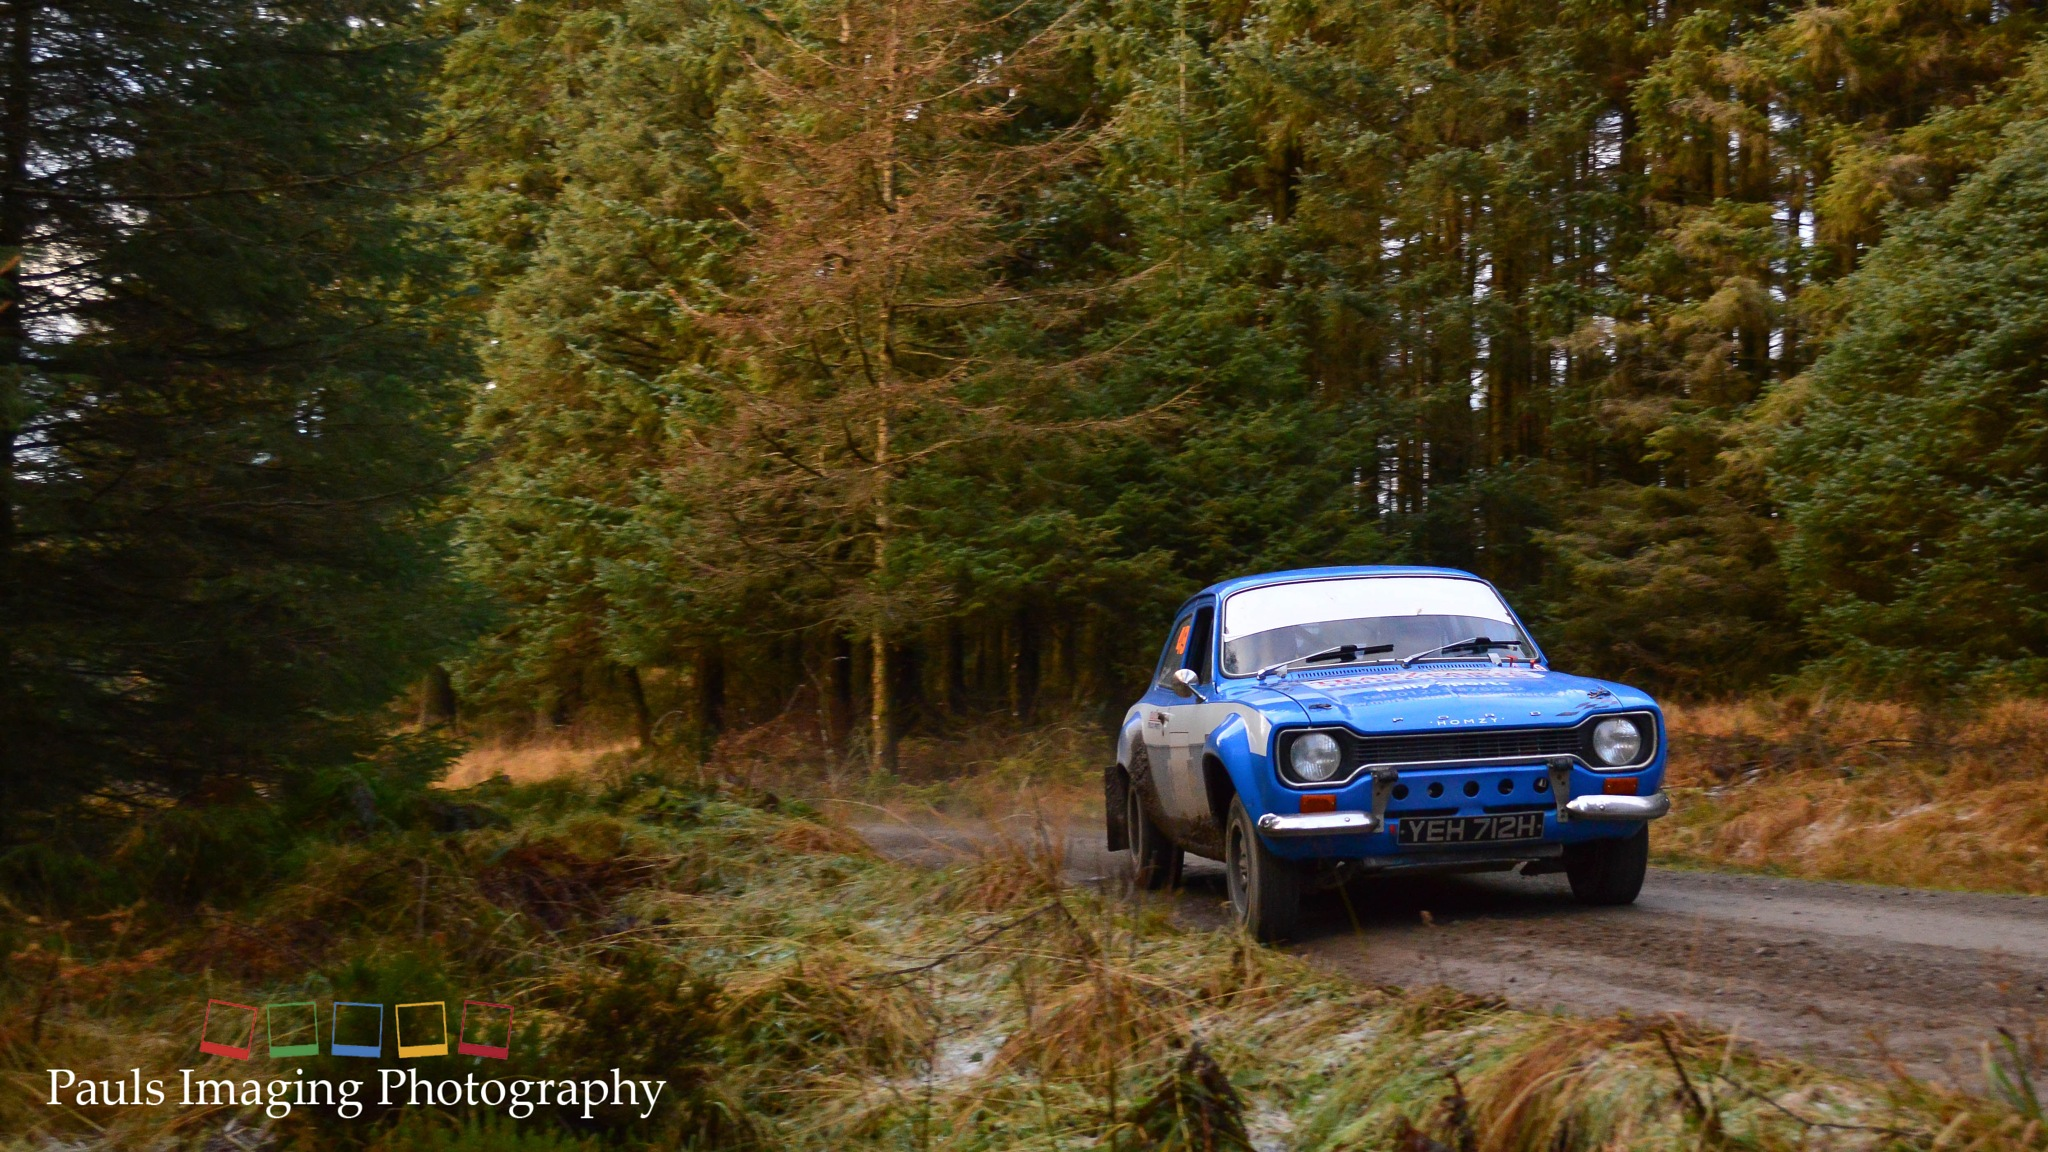 Grizedale Stages Rally 2016 - Ford Escort Mk1 Rally Car by PaulsImaging